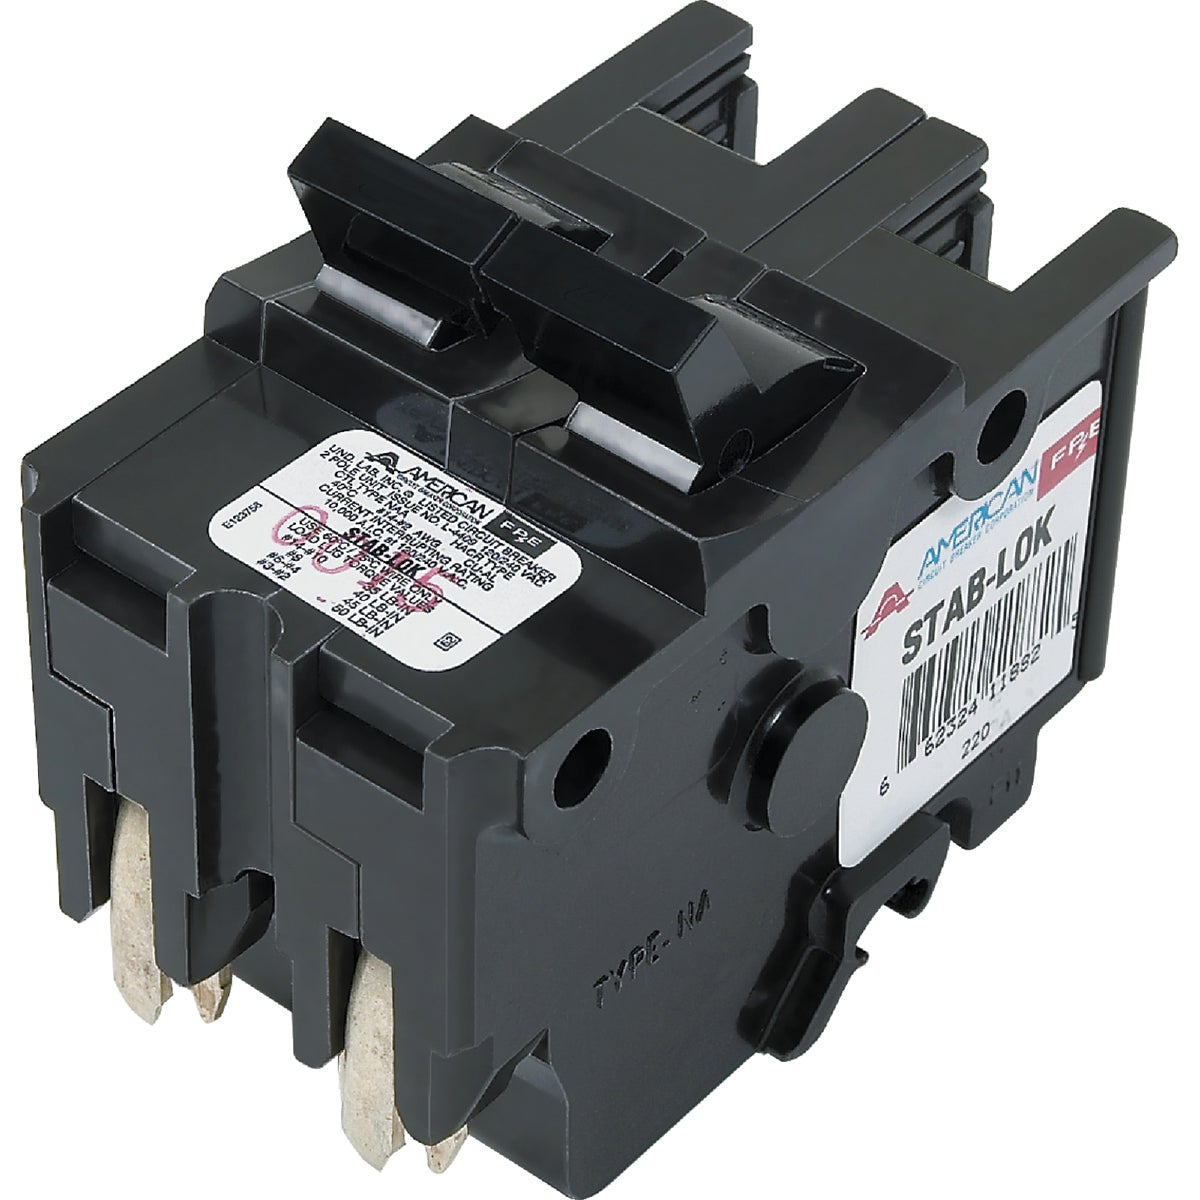 60A 2P CIRCUIT BREAKER - UBIF260N by Connecticut Electric